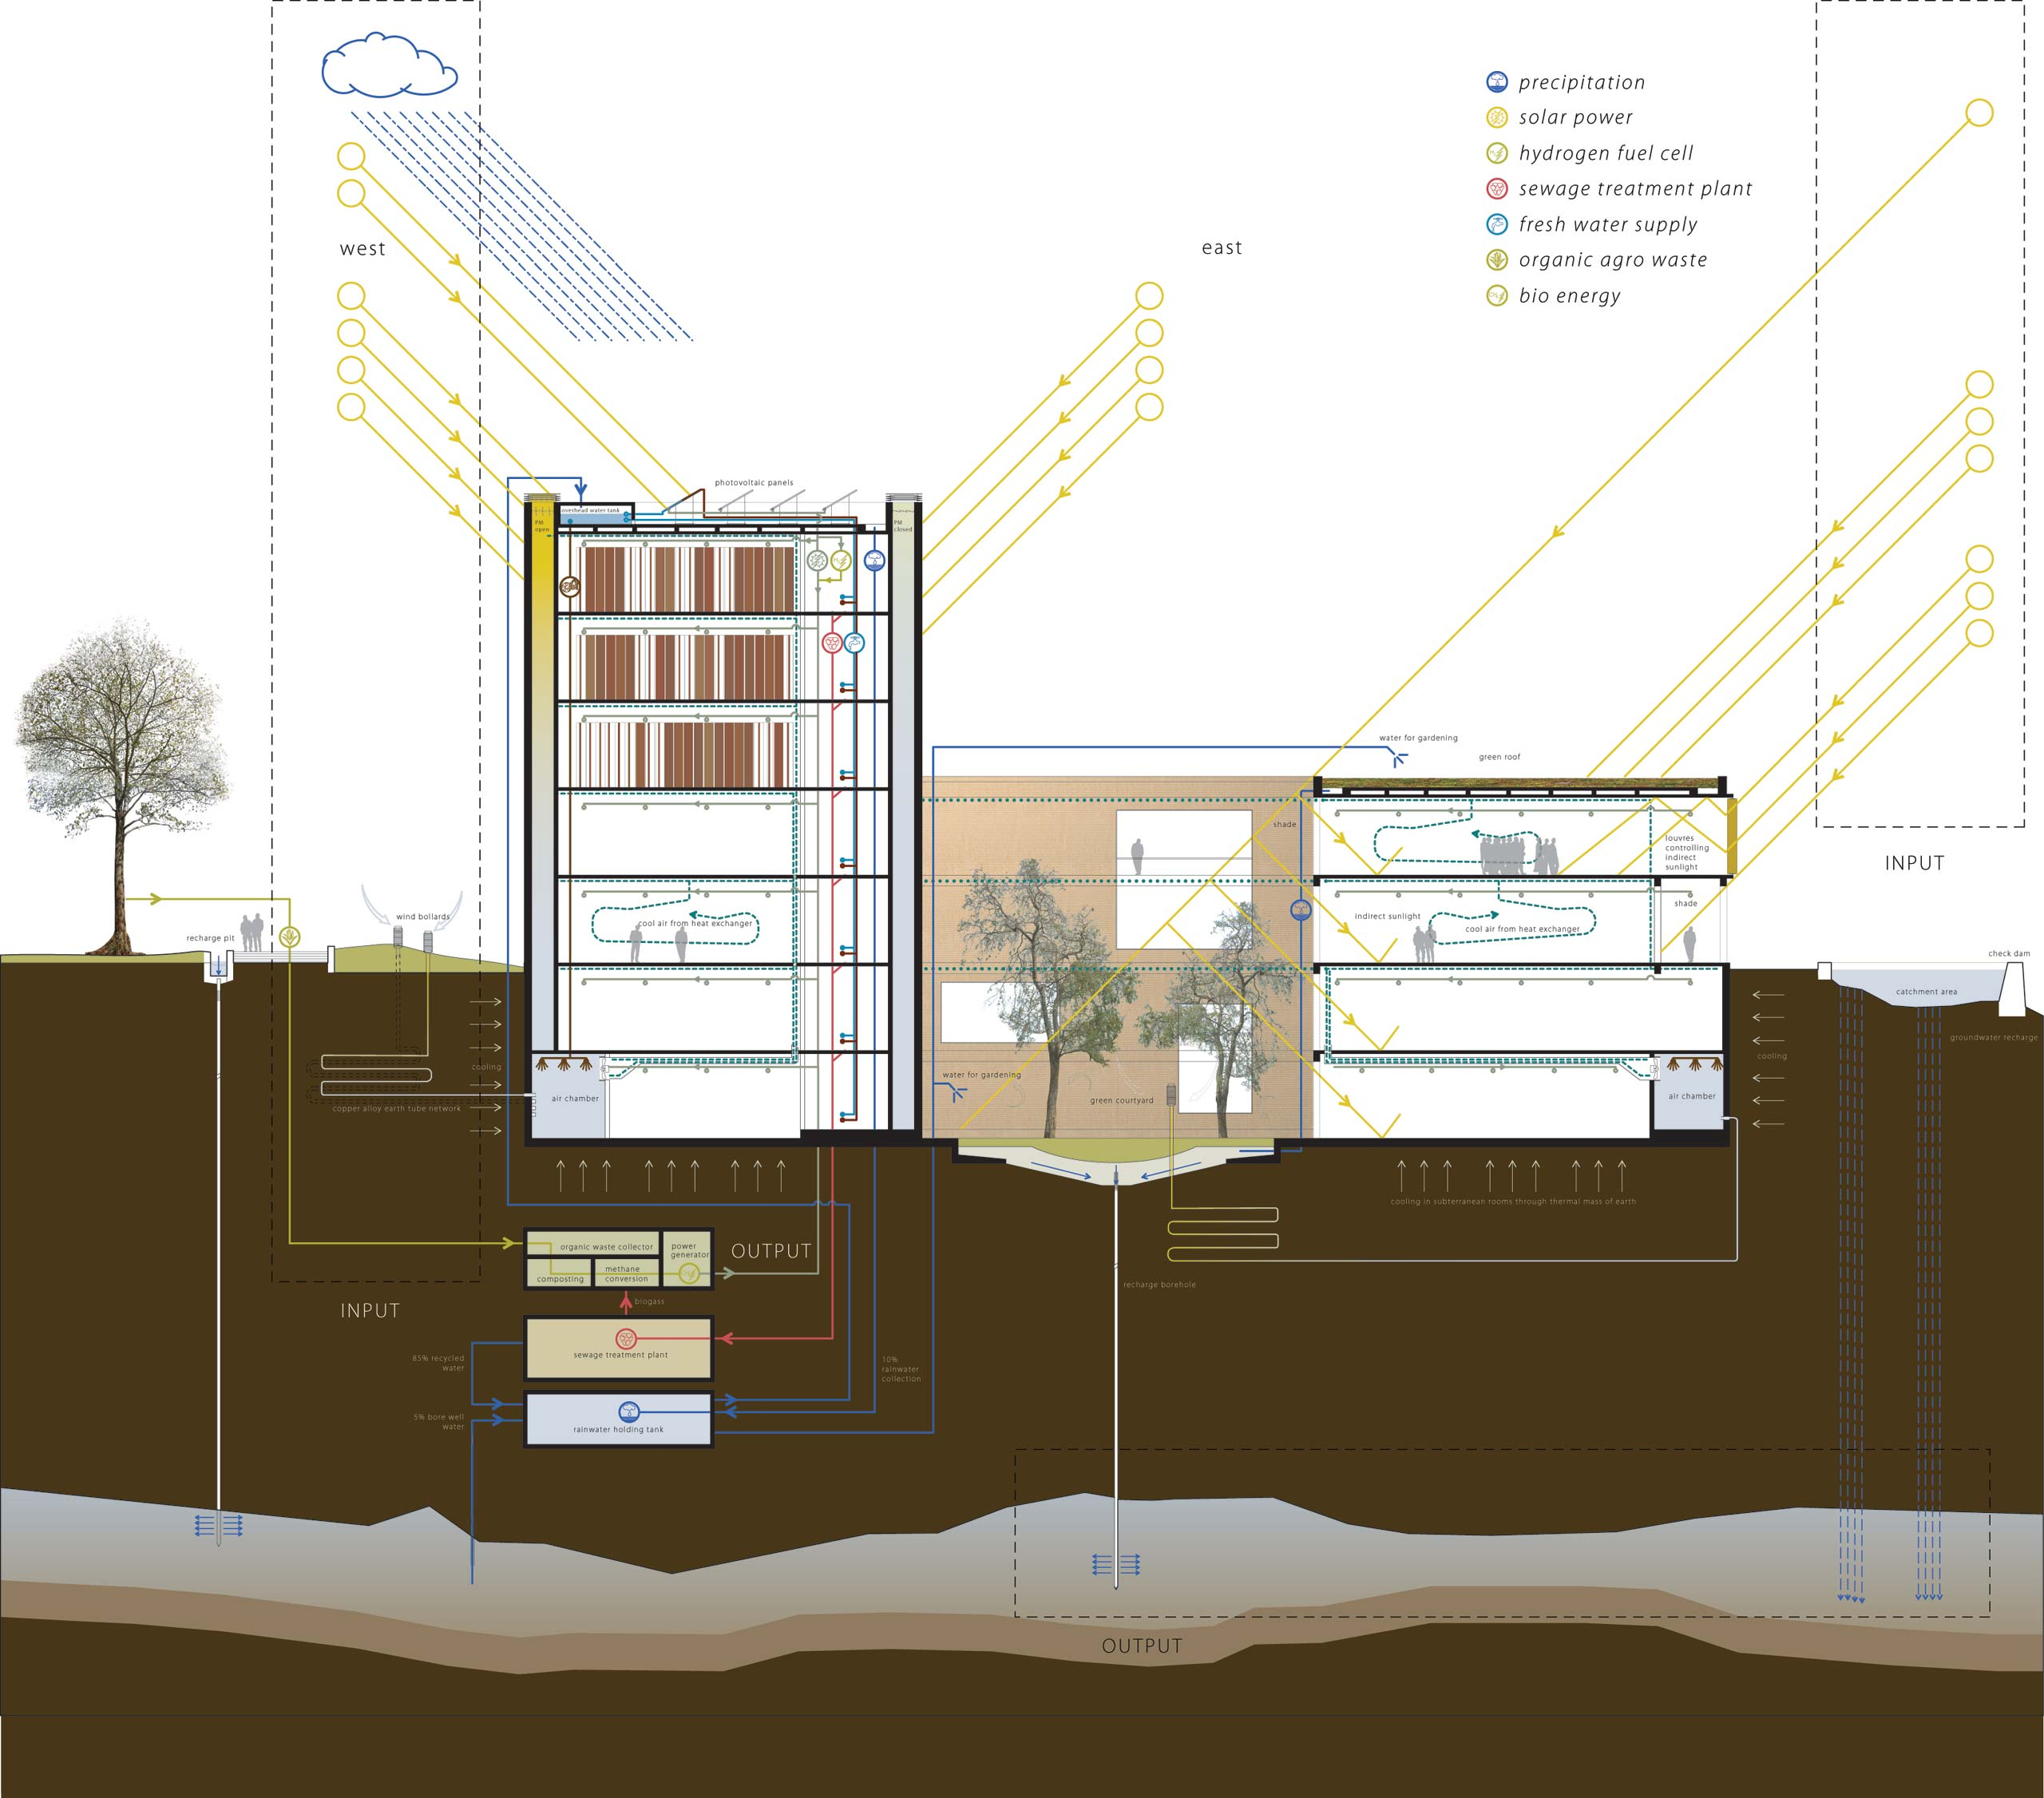 sustainability diagram school of planning and architecture New Delhi competition design